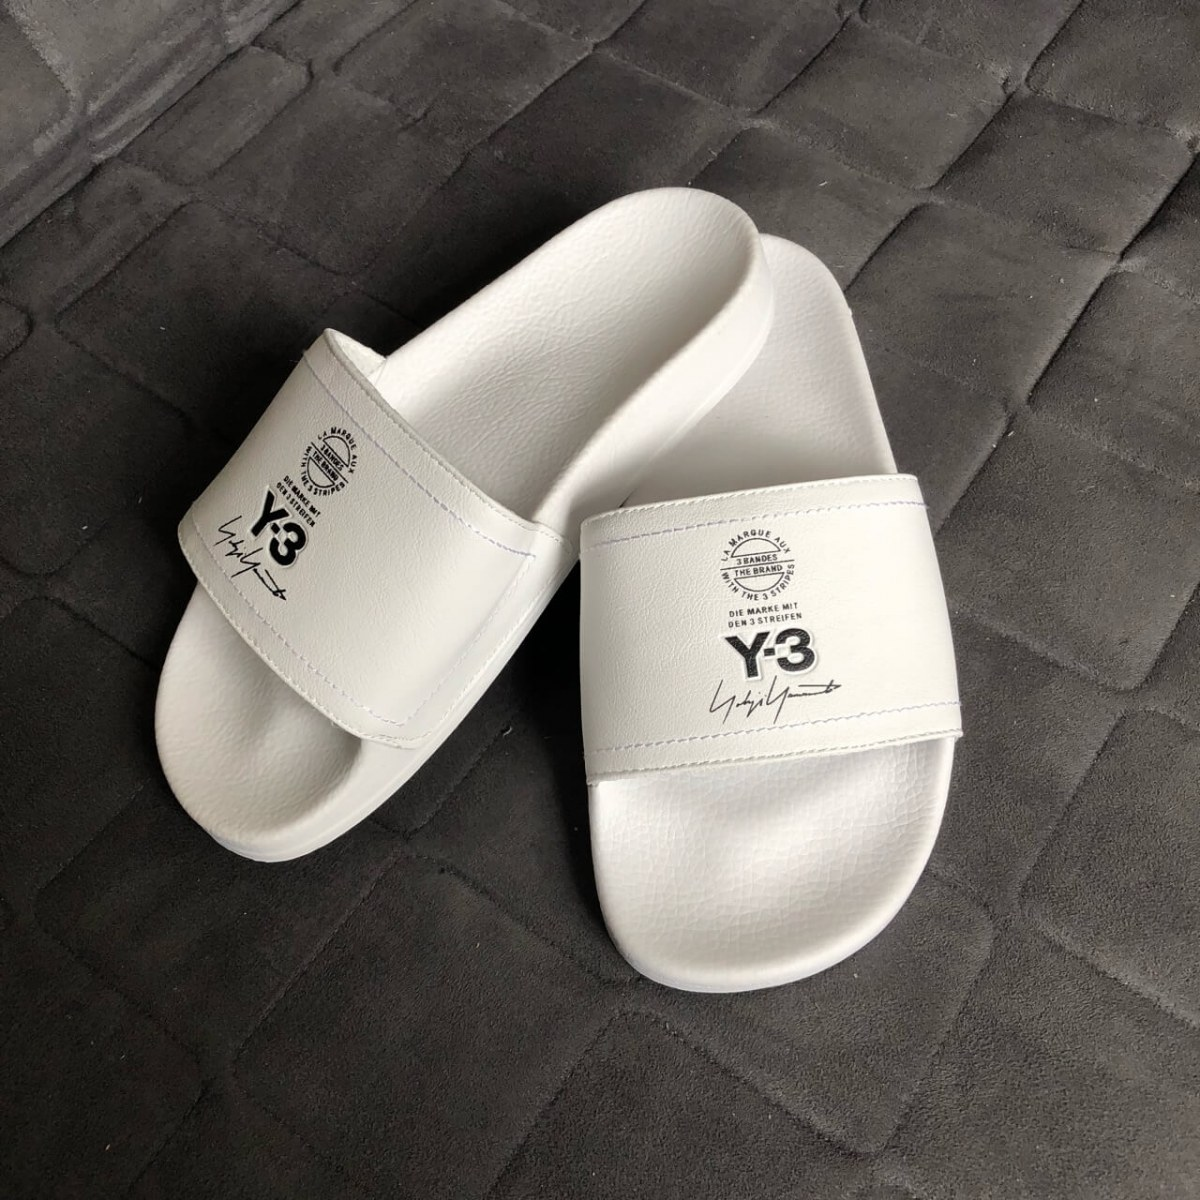 Шлепанцы Adidas x Y-3